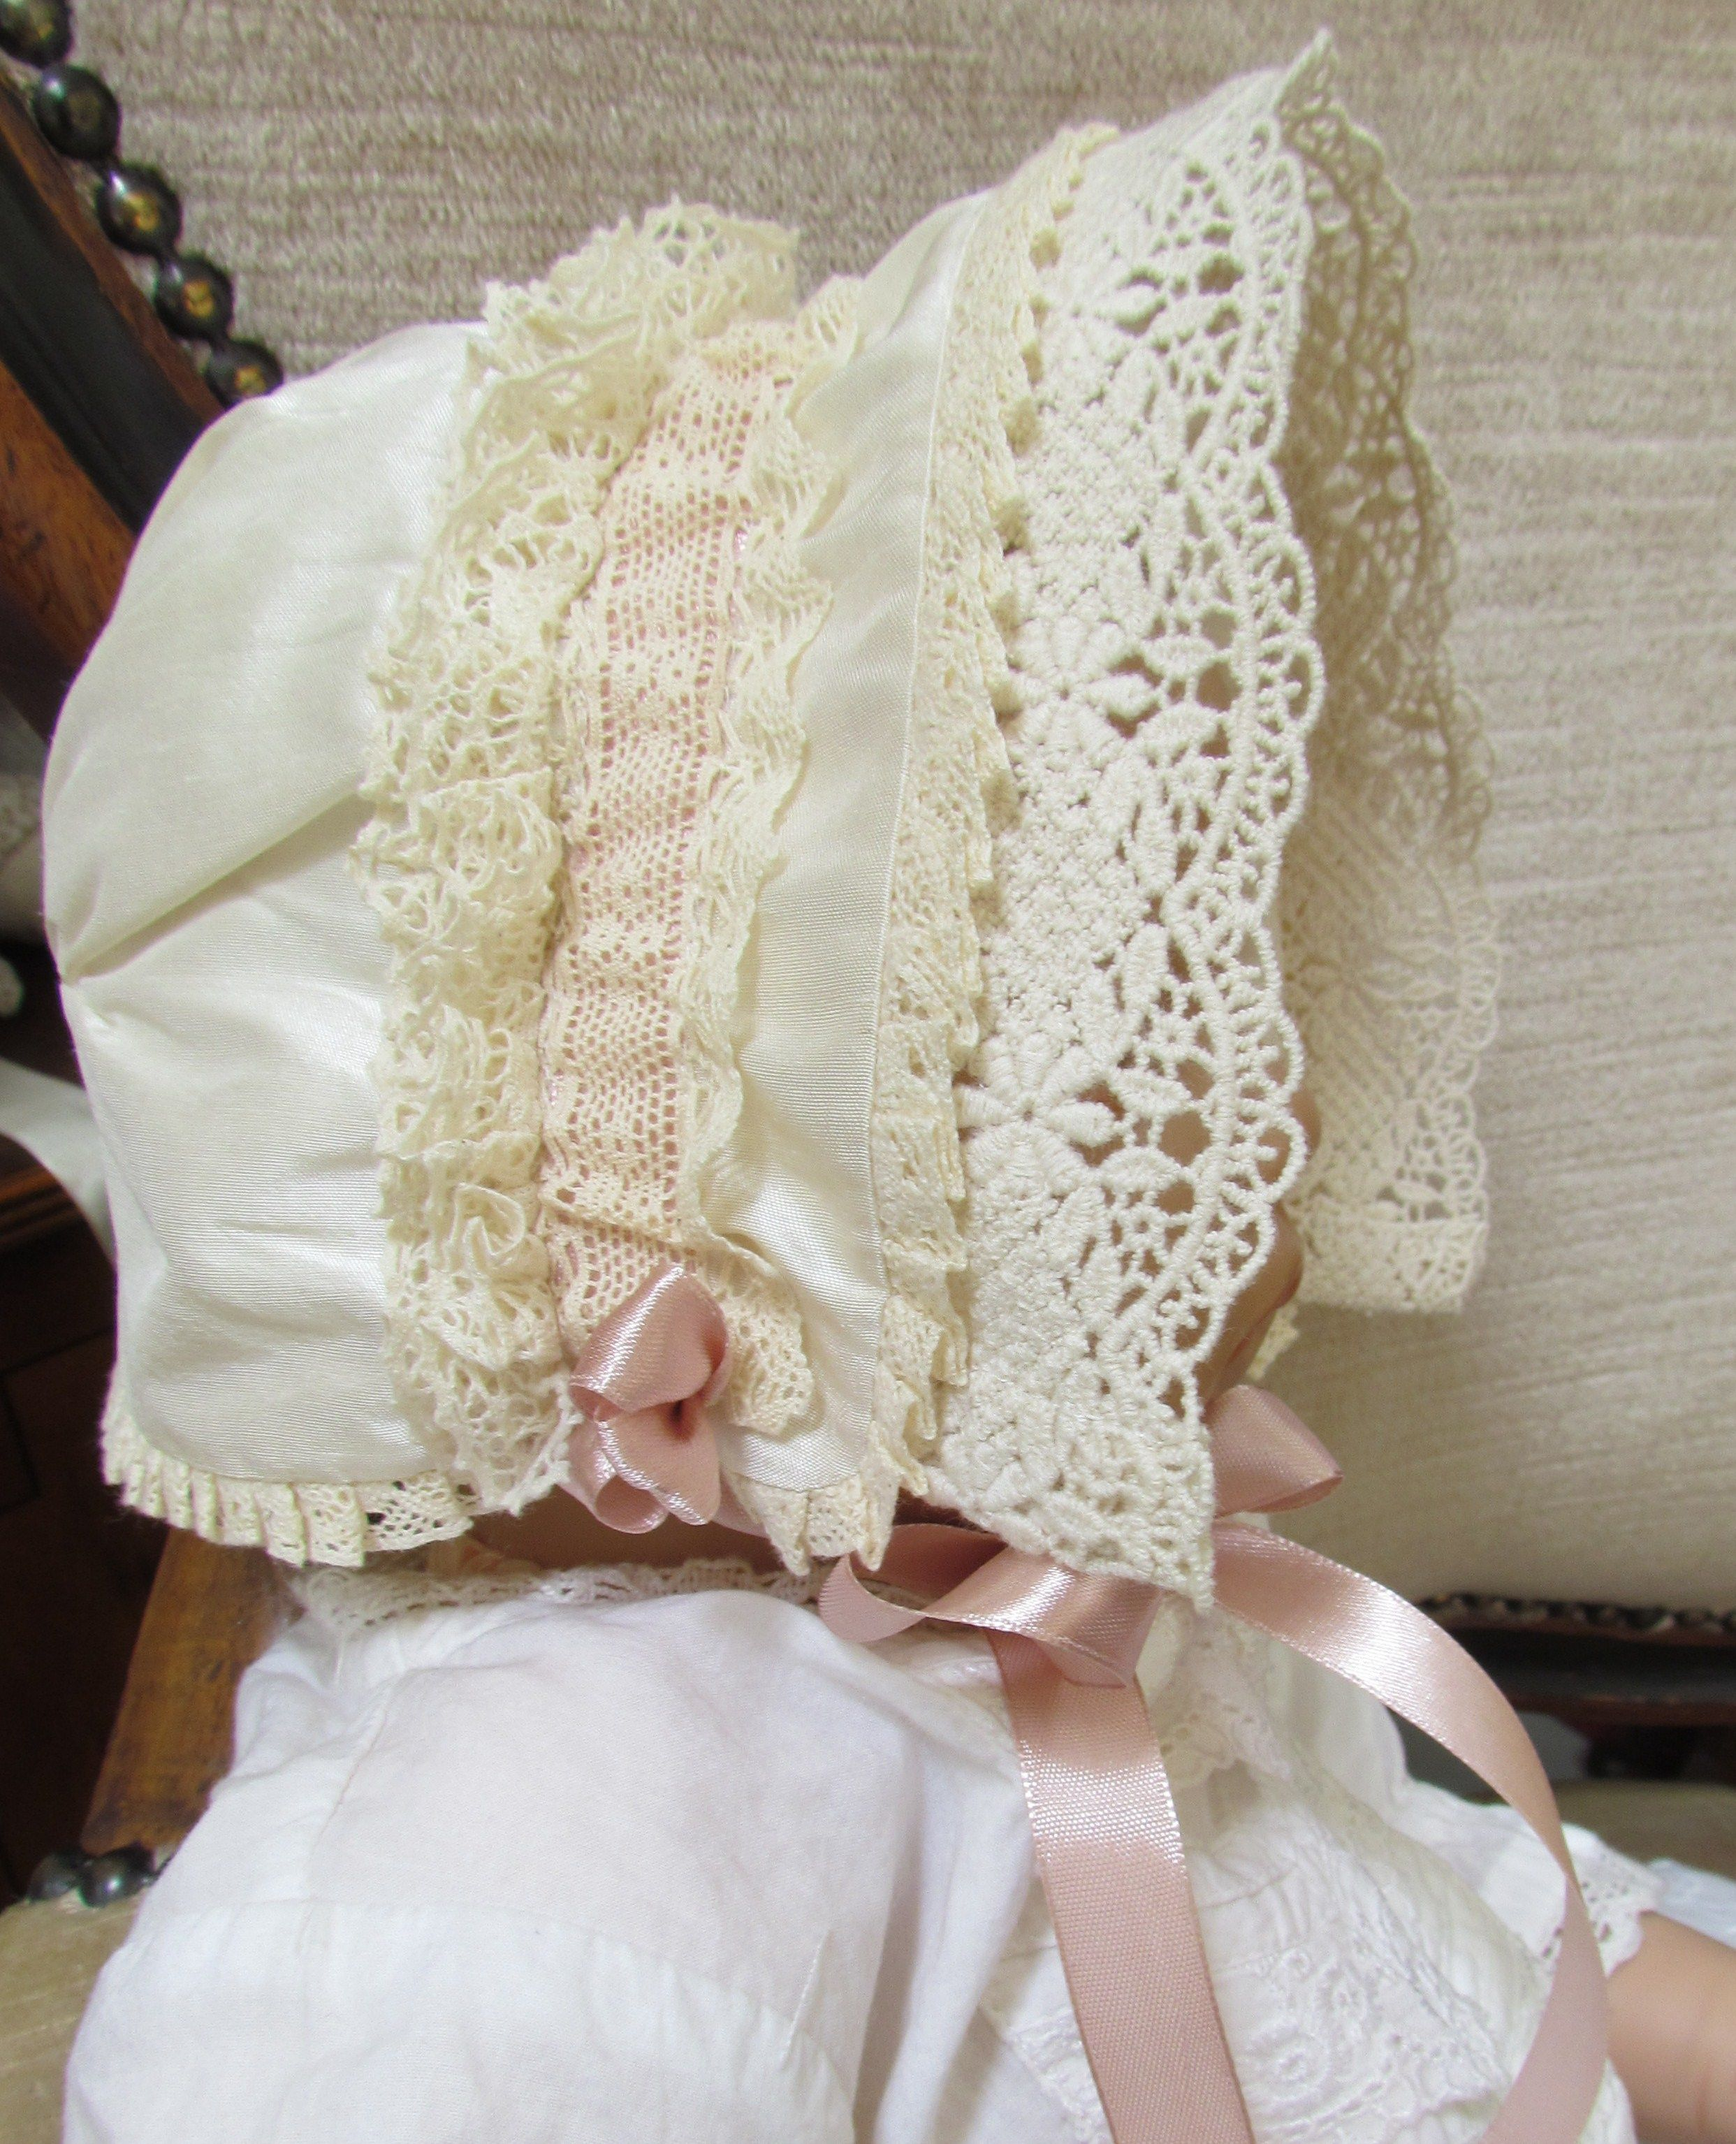 Newborn Baby Girl Outfits Pinterest | www.imgkid.com - The Image Kid Has It!